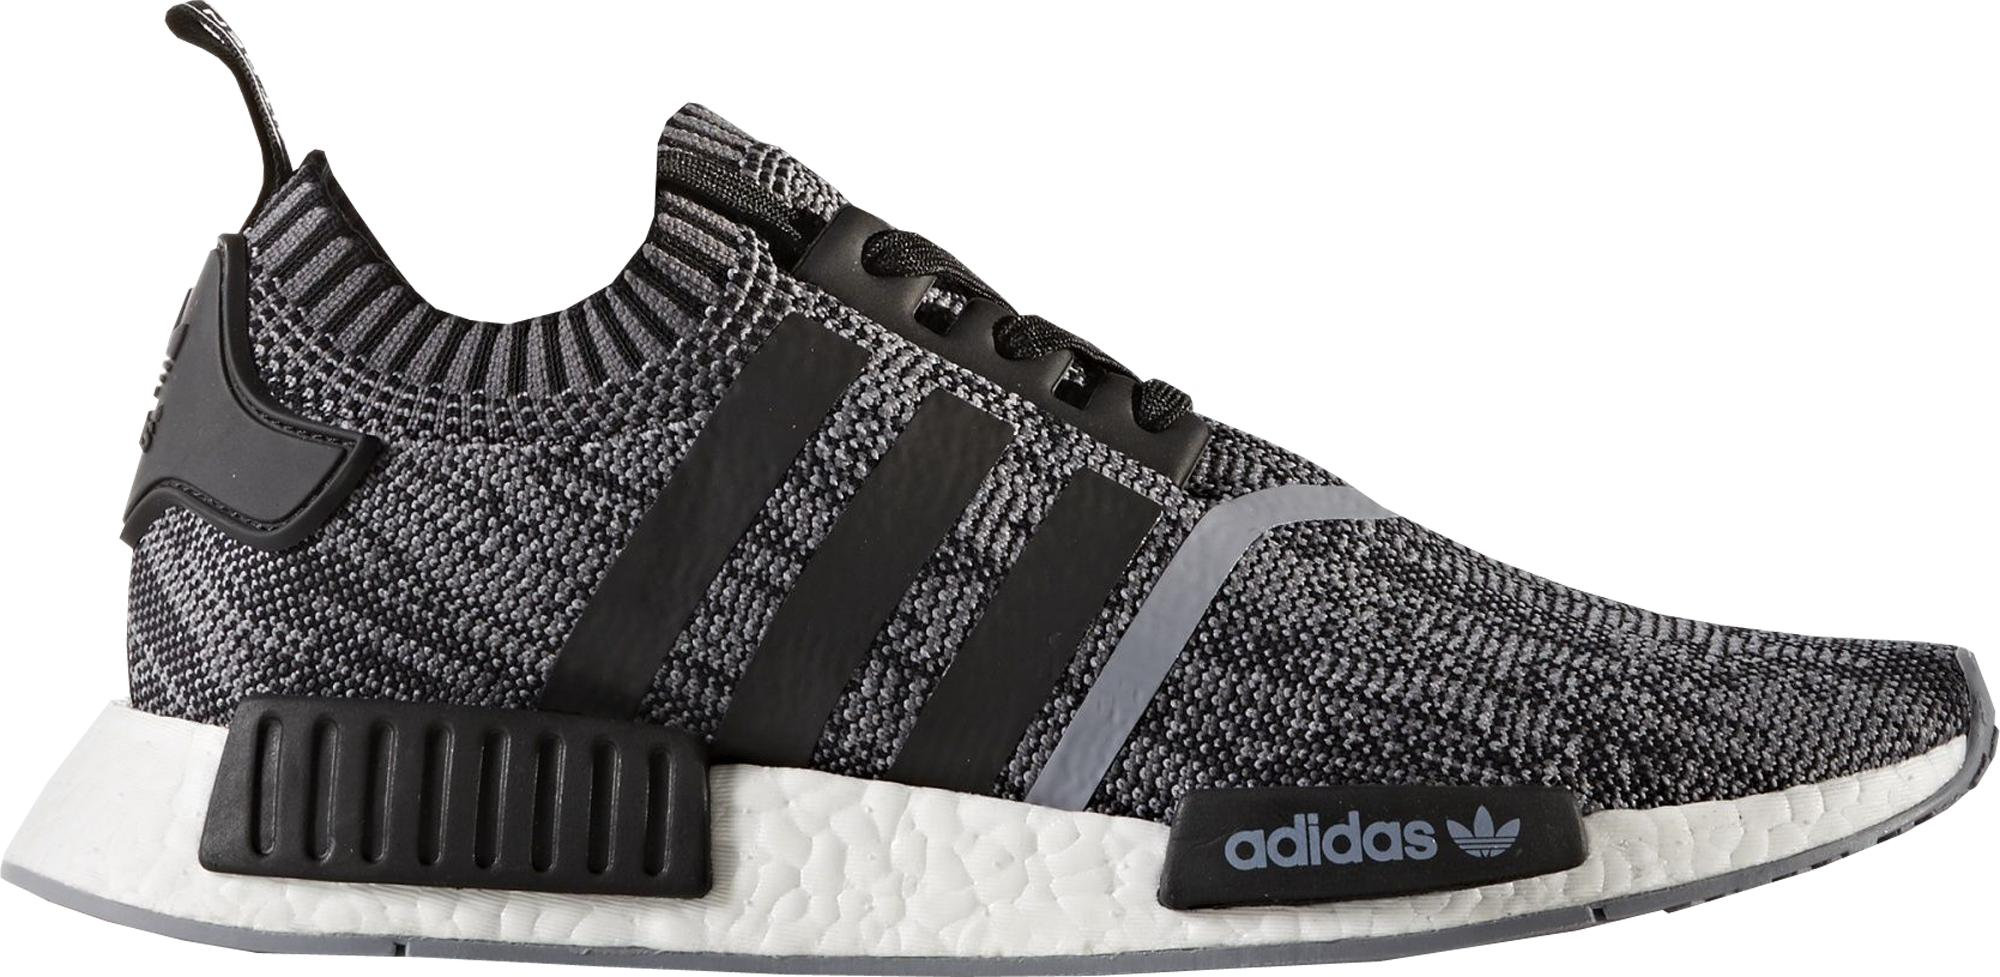 Adidas Nmd R1 Ai Camo Black White For Men Lyst